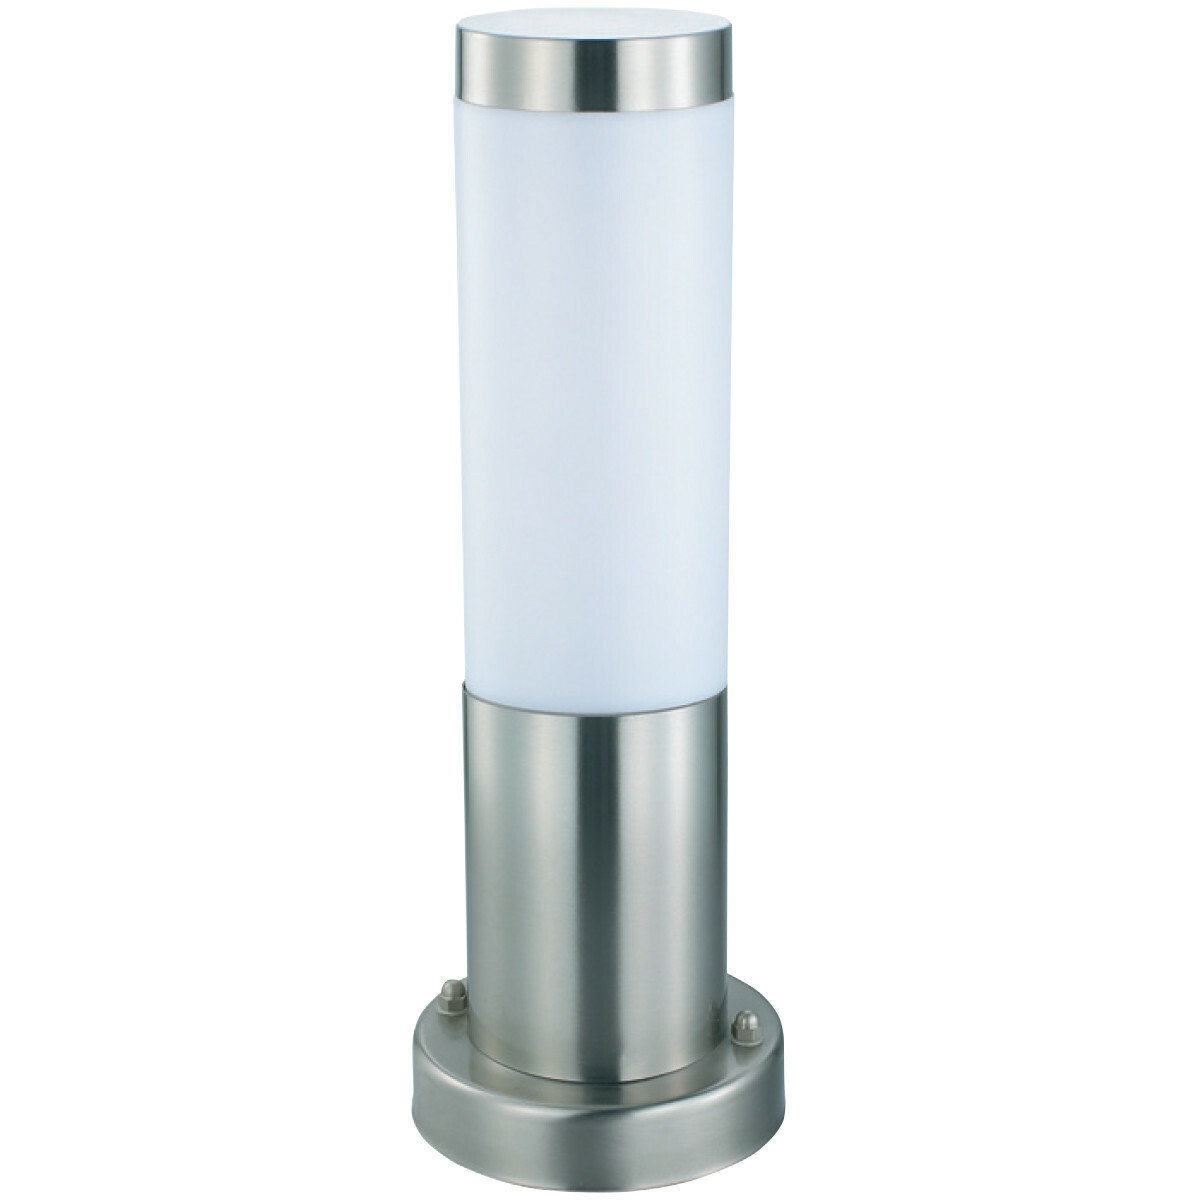 PHILIPS - LED Tuinverlichting - Staande Buitenlamp - SceneSwitch 827 A60 - Laurea 3 - E27 Fitting -